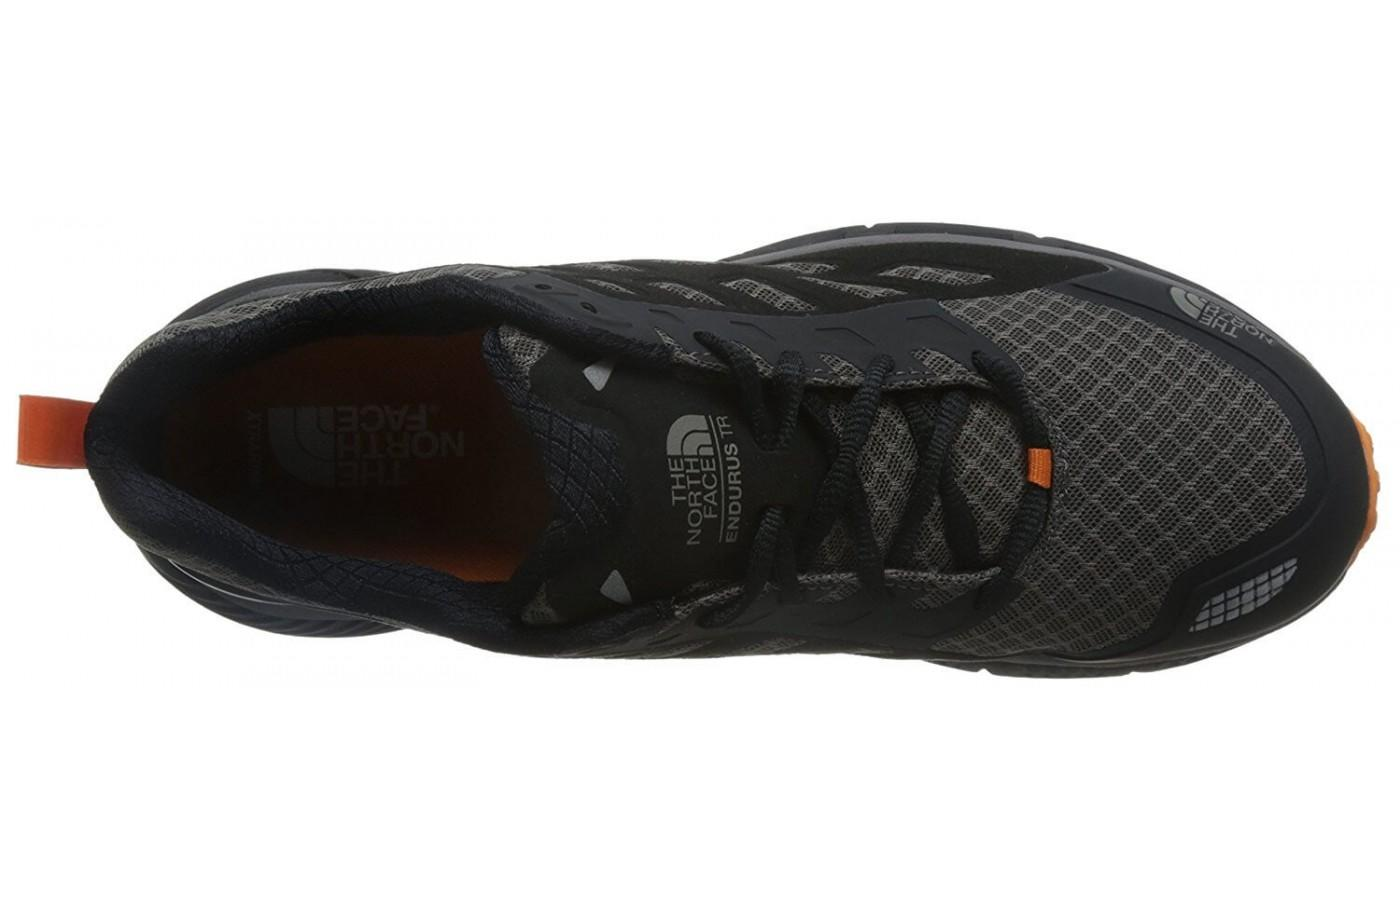 the upper of The North Face Endurus TR is flexible and breathable for step-in comfort